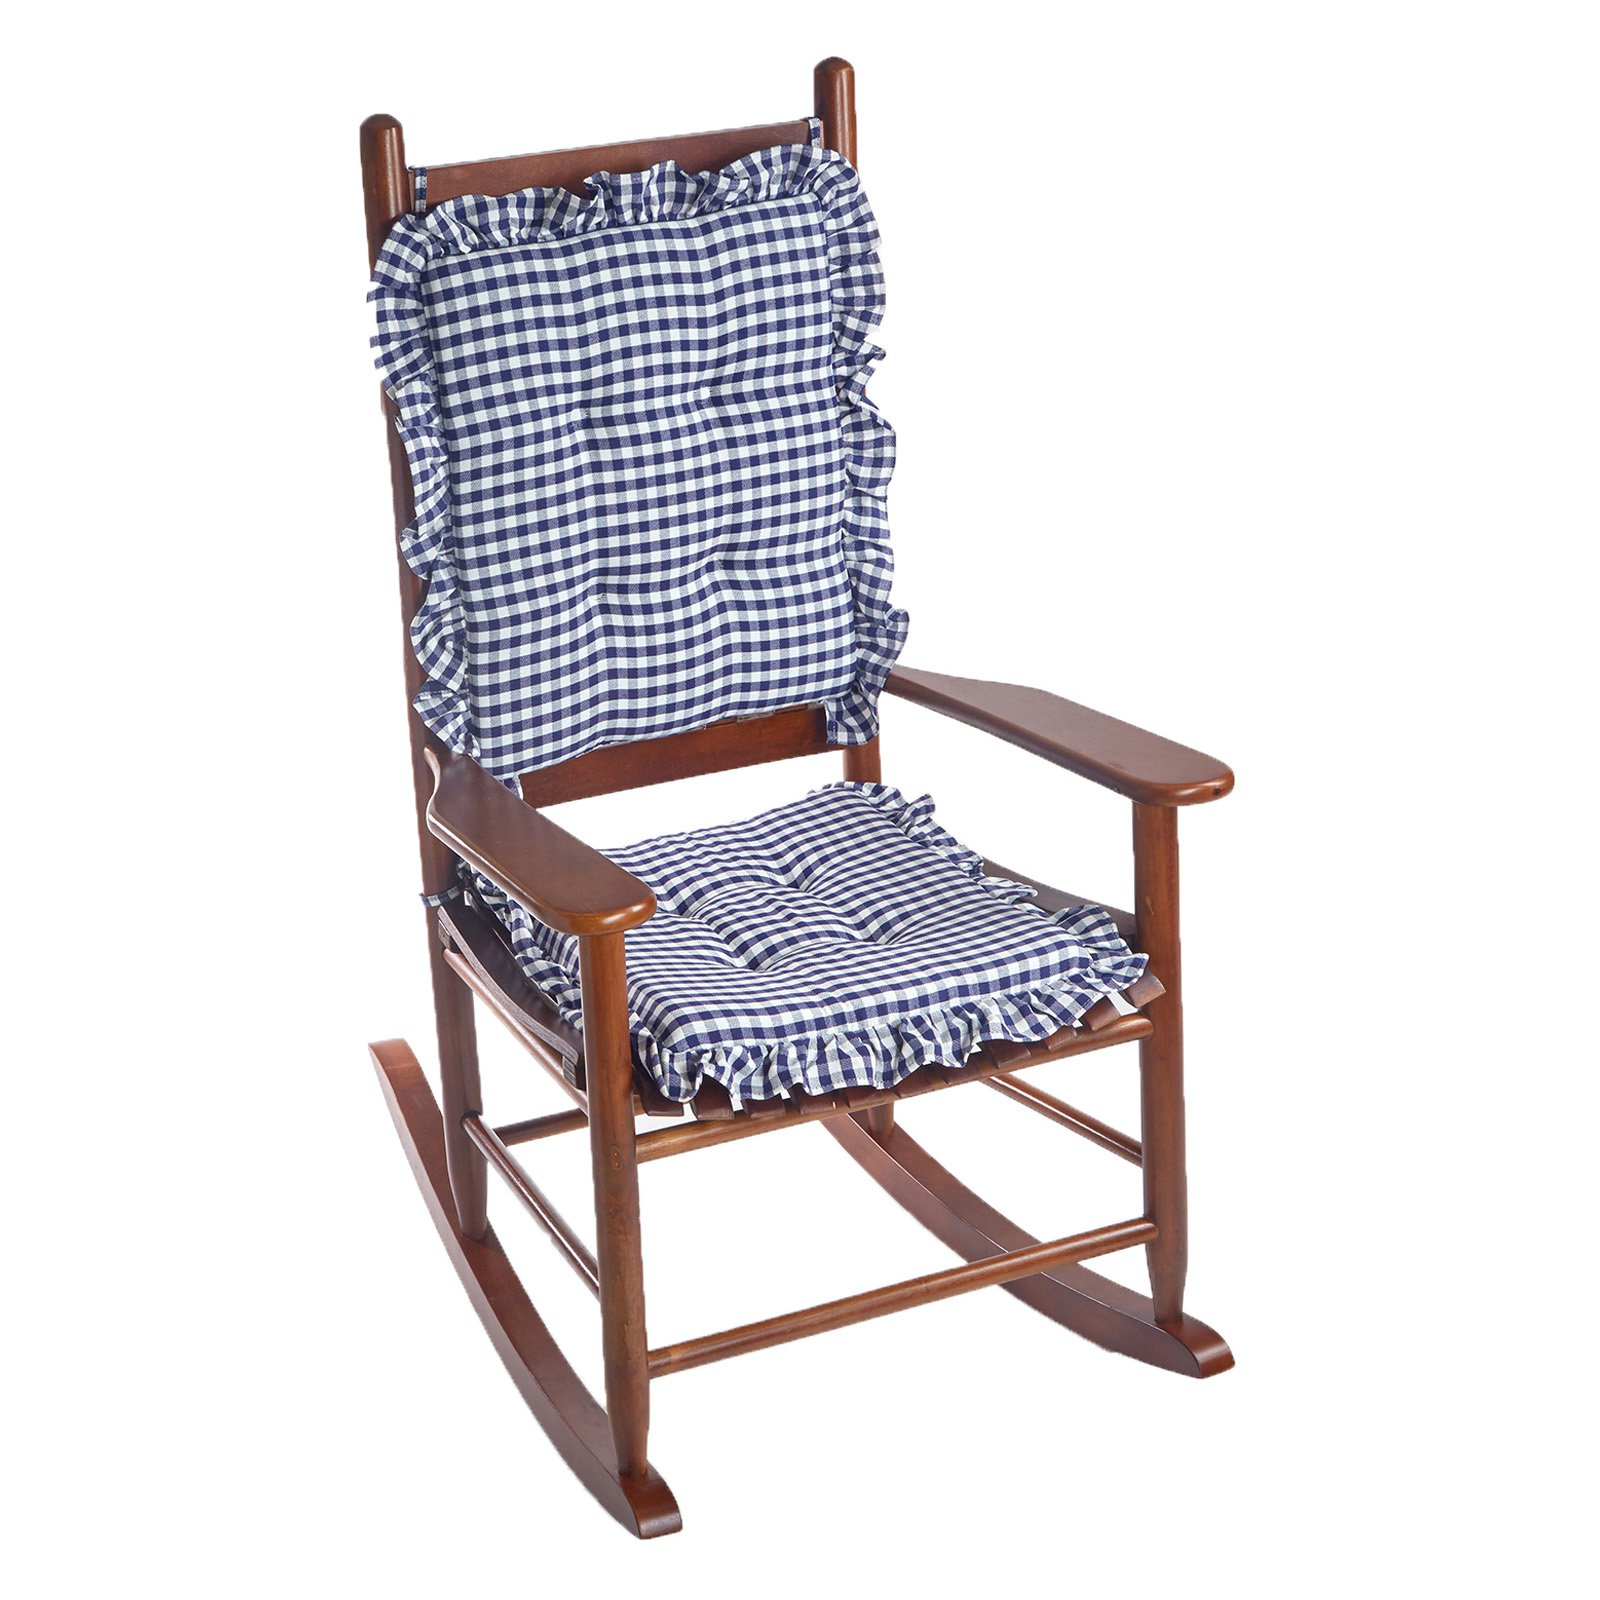 2 piece rocking chair cushions best for sewing room klear vu gingham ruffle delightfill cushion set